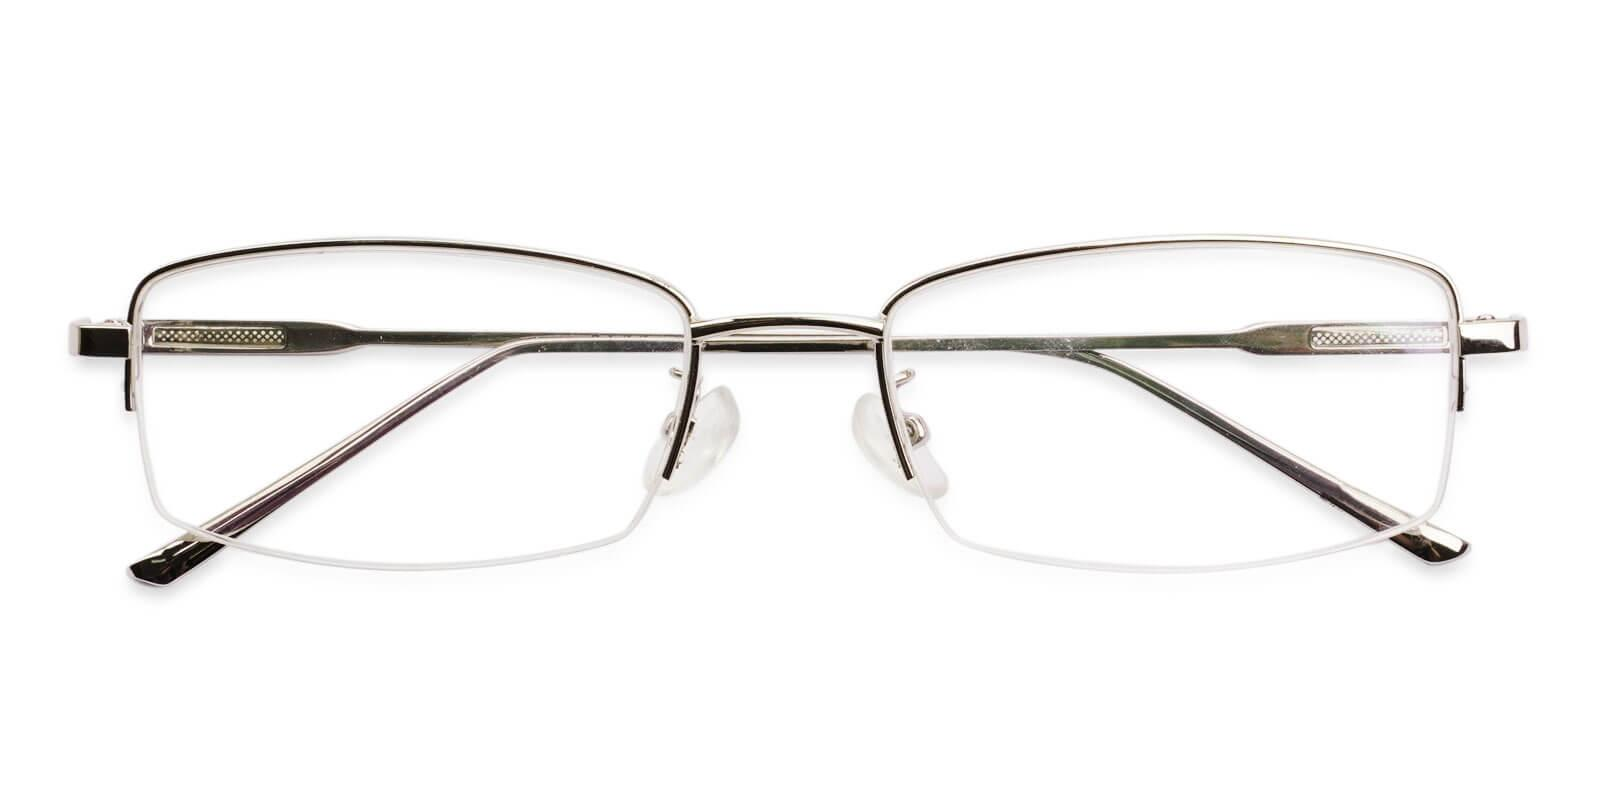 Jacob Silver Metal Eyeglasses , NosePads Frames from ABBE Glasses